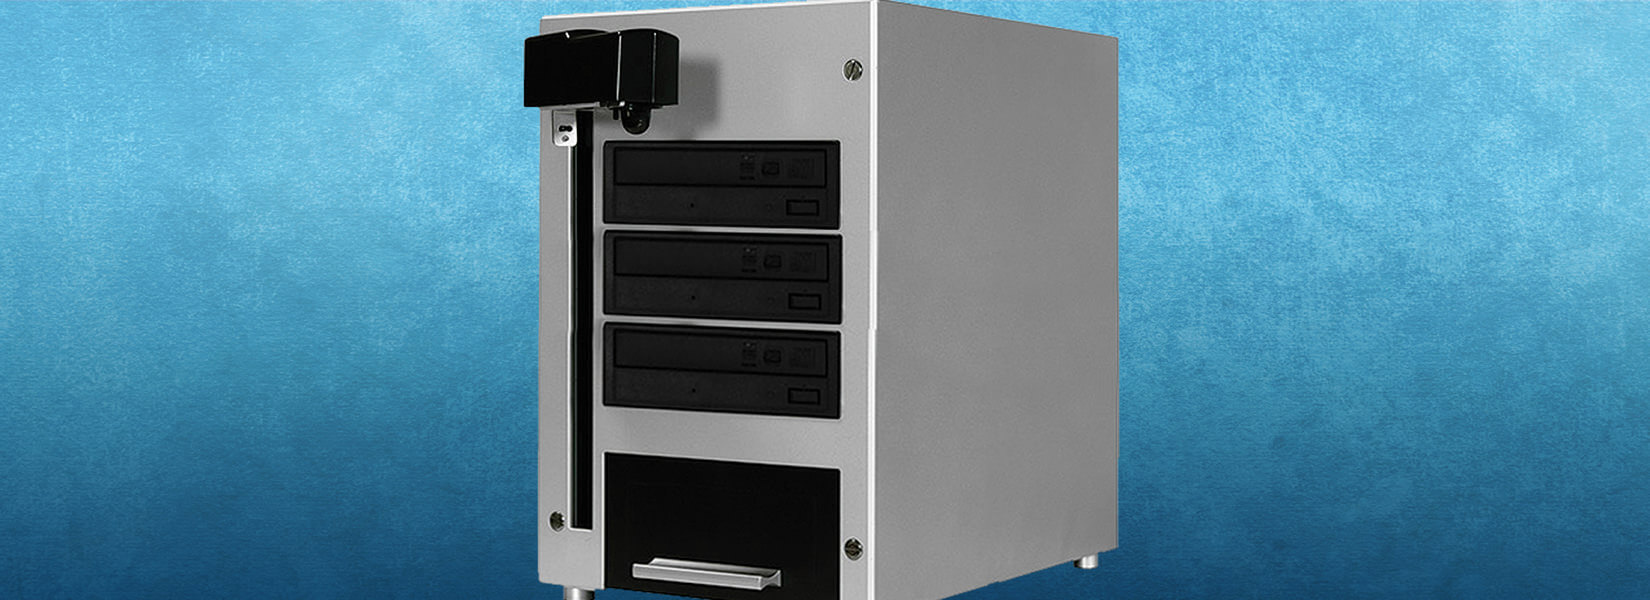 The Cube 3 CD/DVD Duplicator